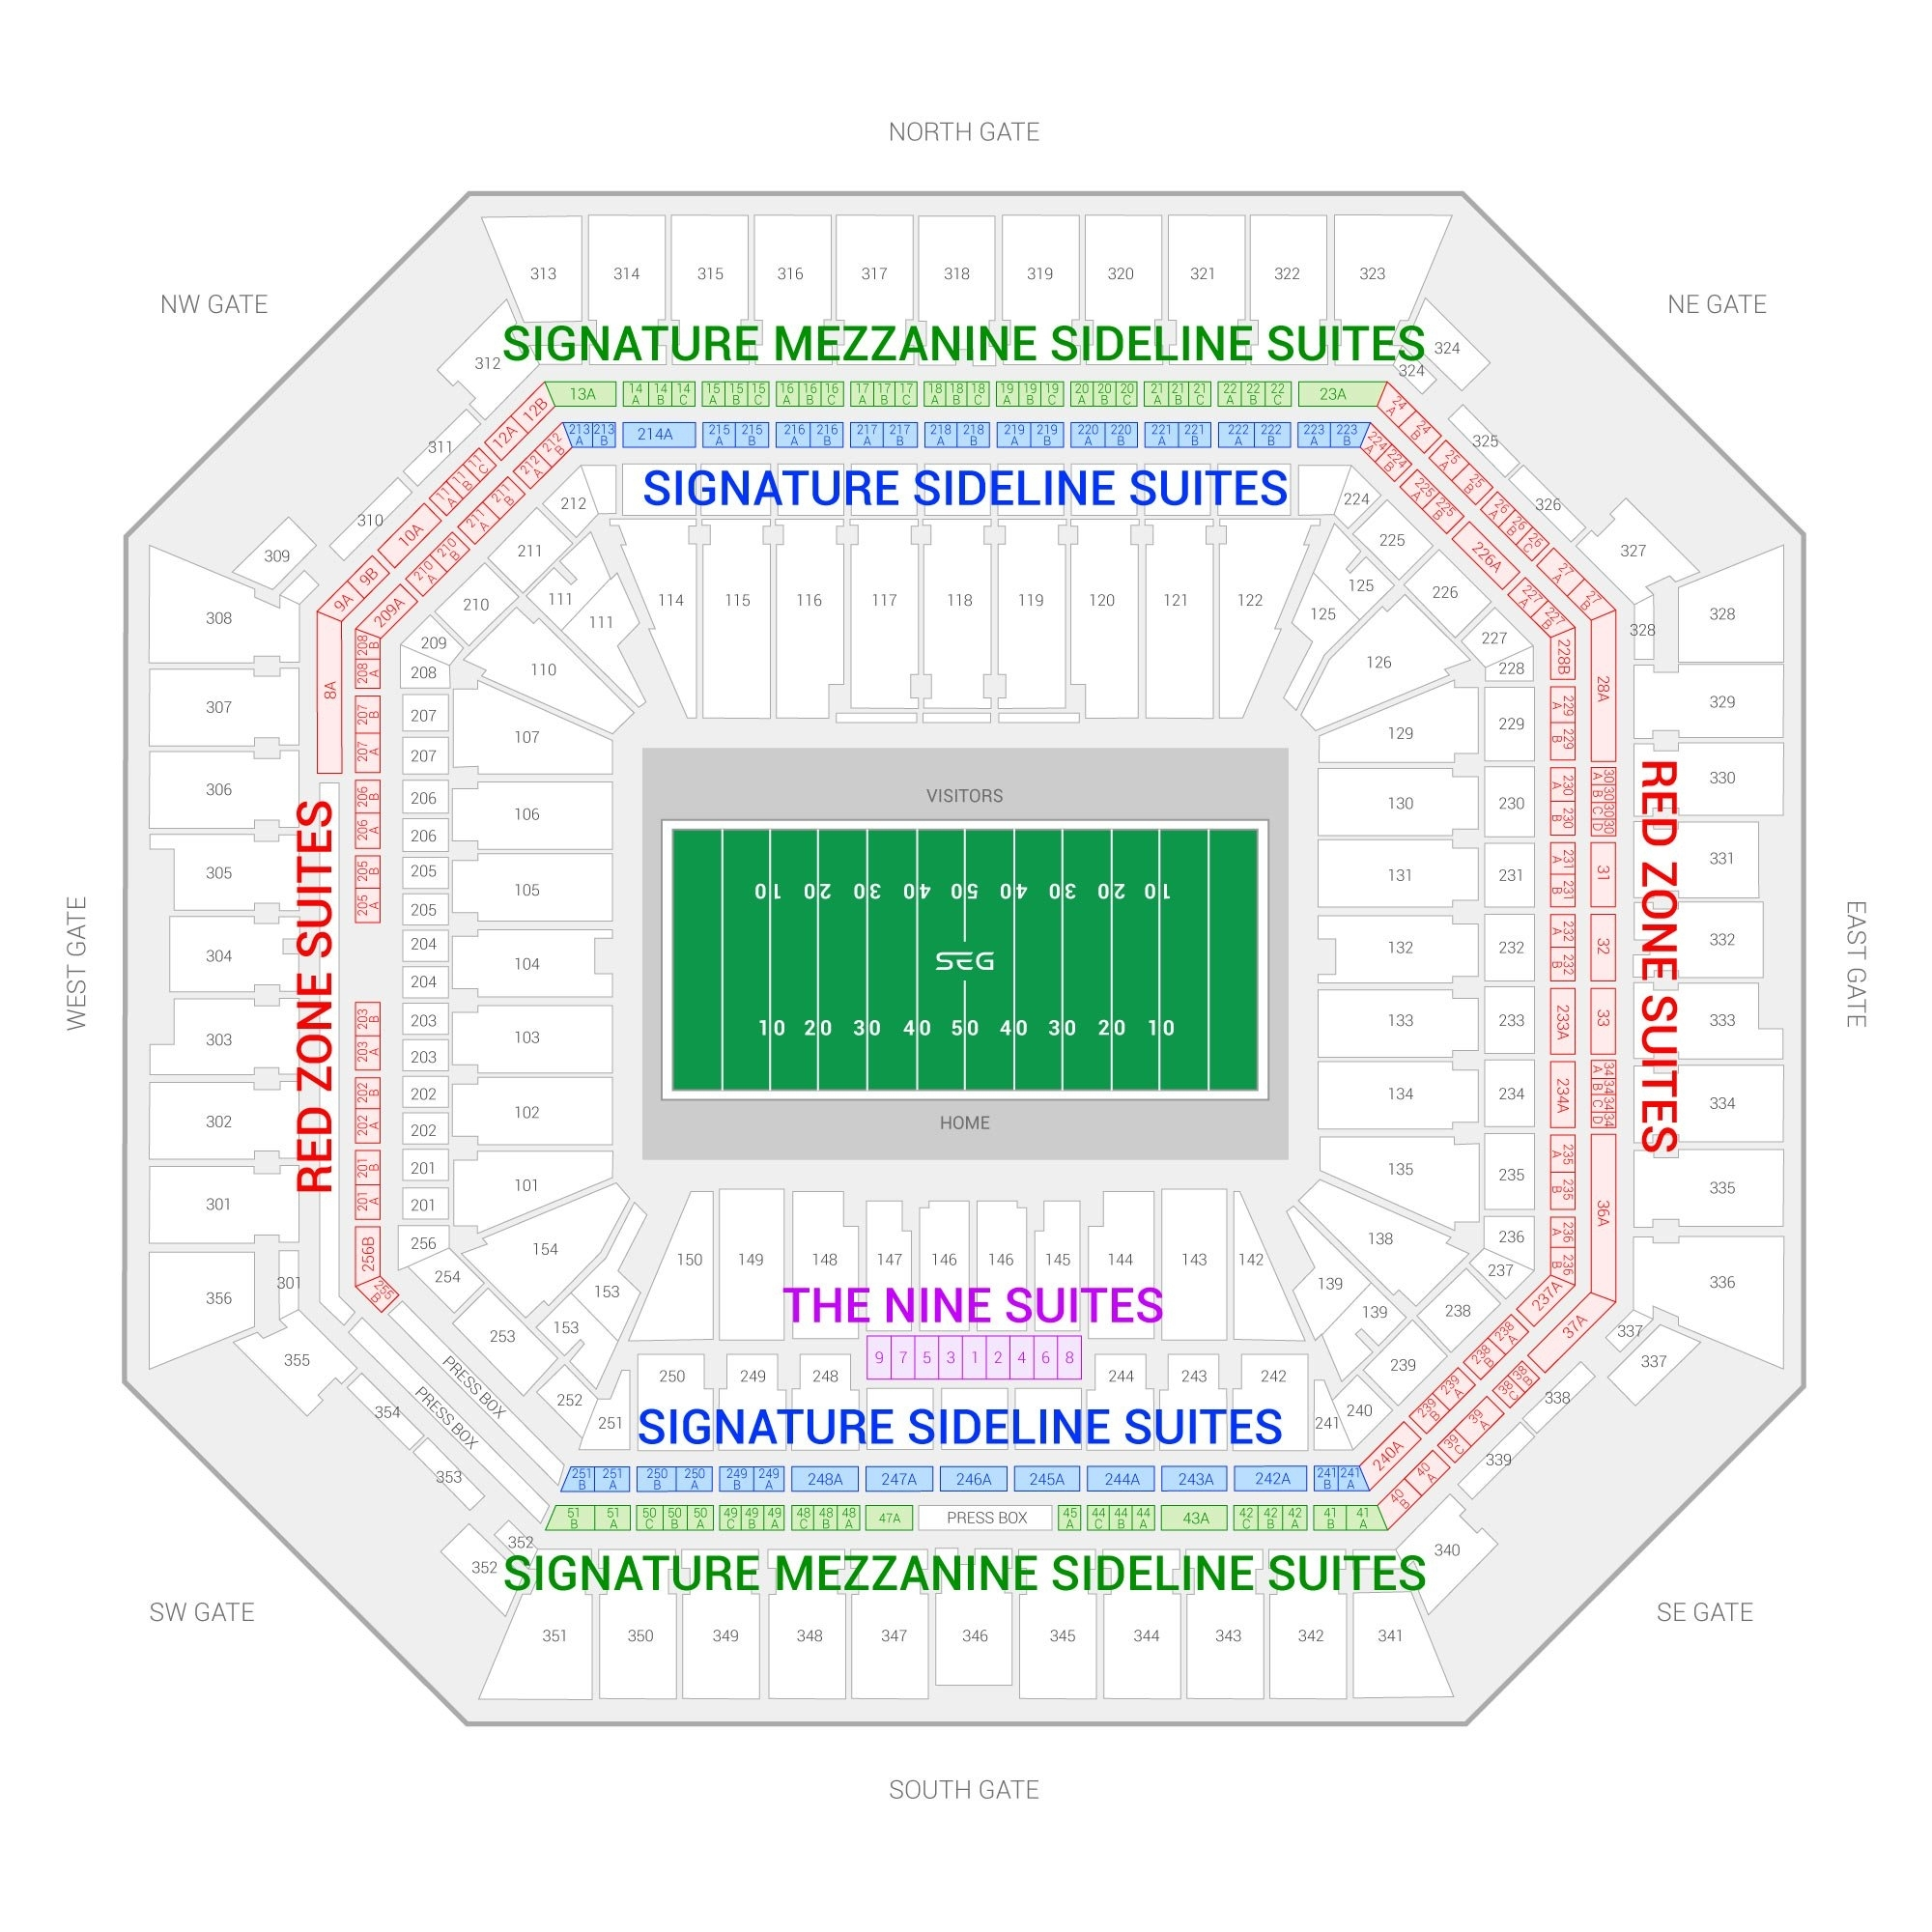 Super Bowl Liv Suite Rentals | Hard Rock Stadium regarding Super Bowl Stadium 2019 Seating Chart